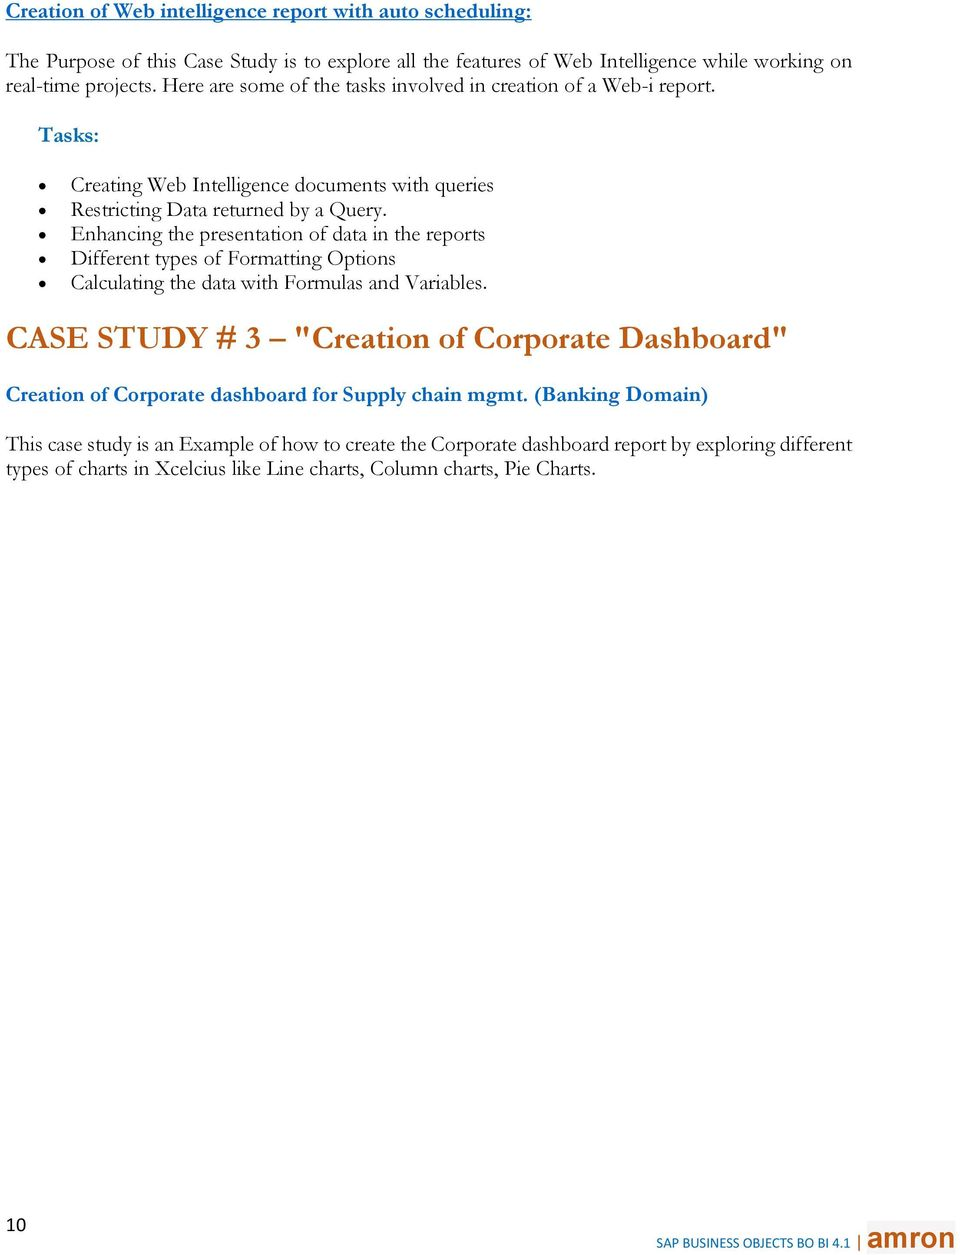 Case Study Template Example Resume And Cover Letter   lorexddns